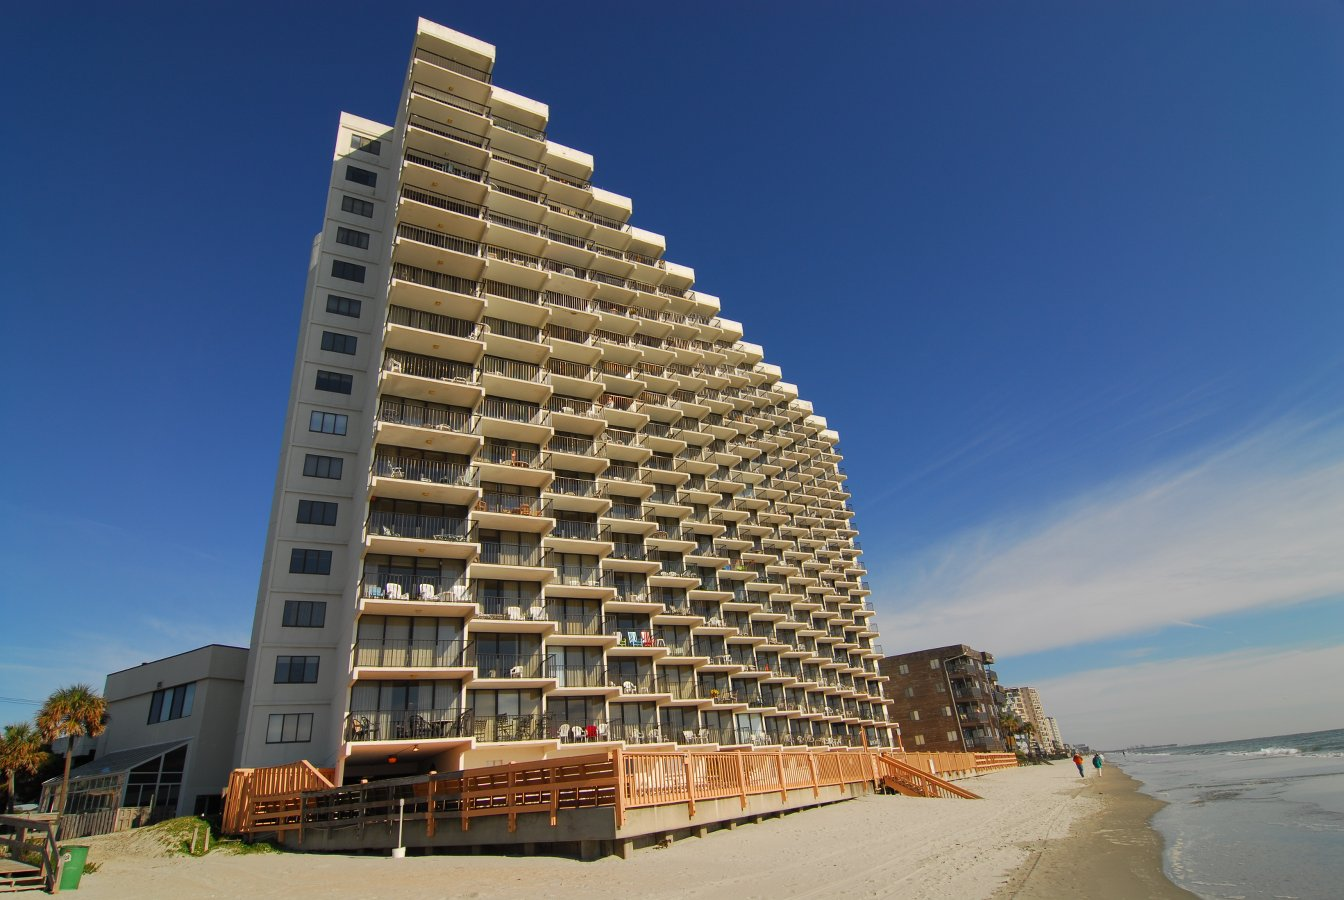 Garden city beach sc condo als garden ftempo for Garden city myrtle beach hotels